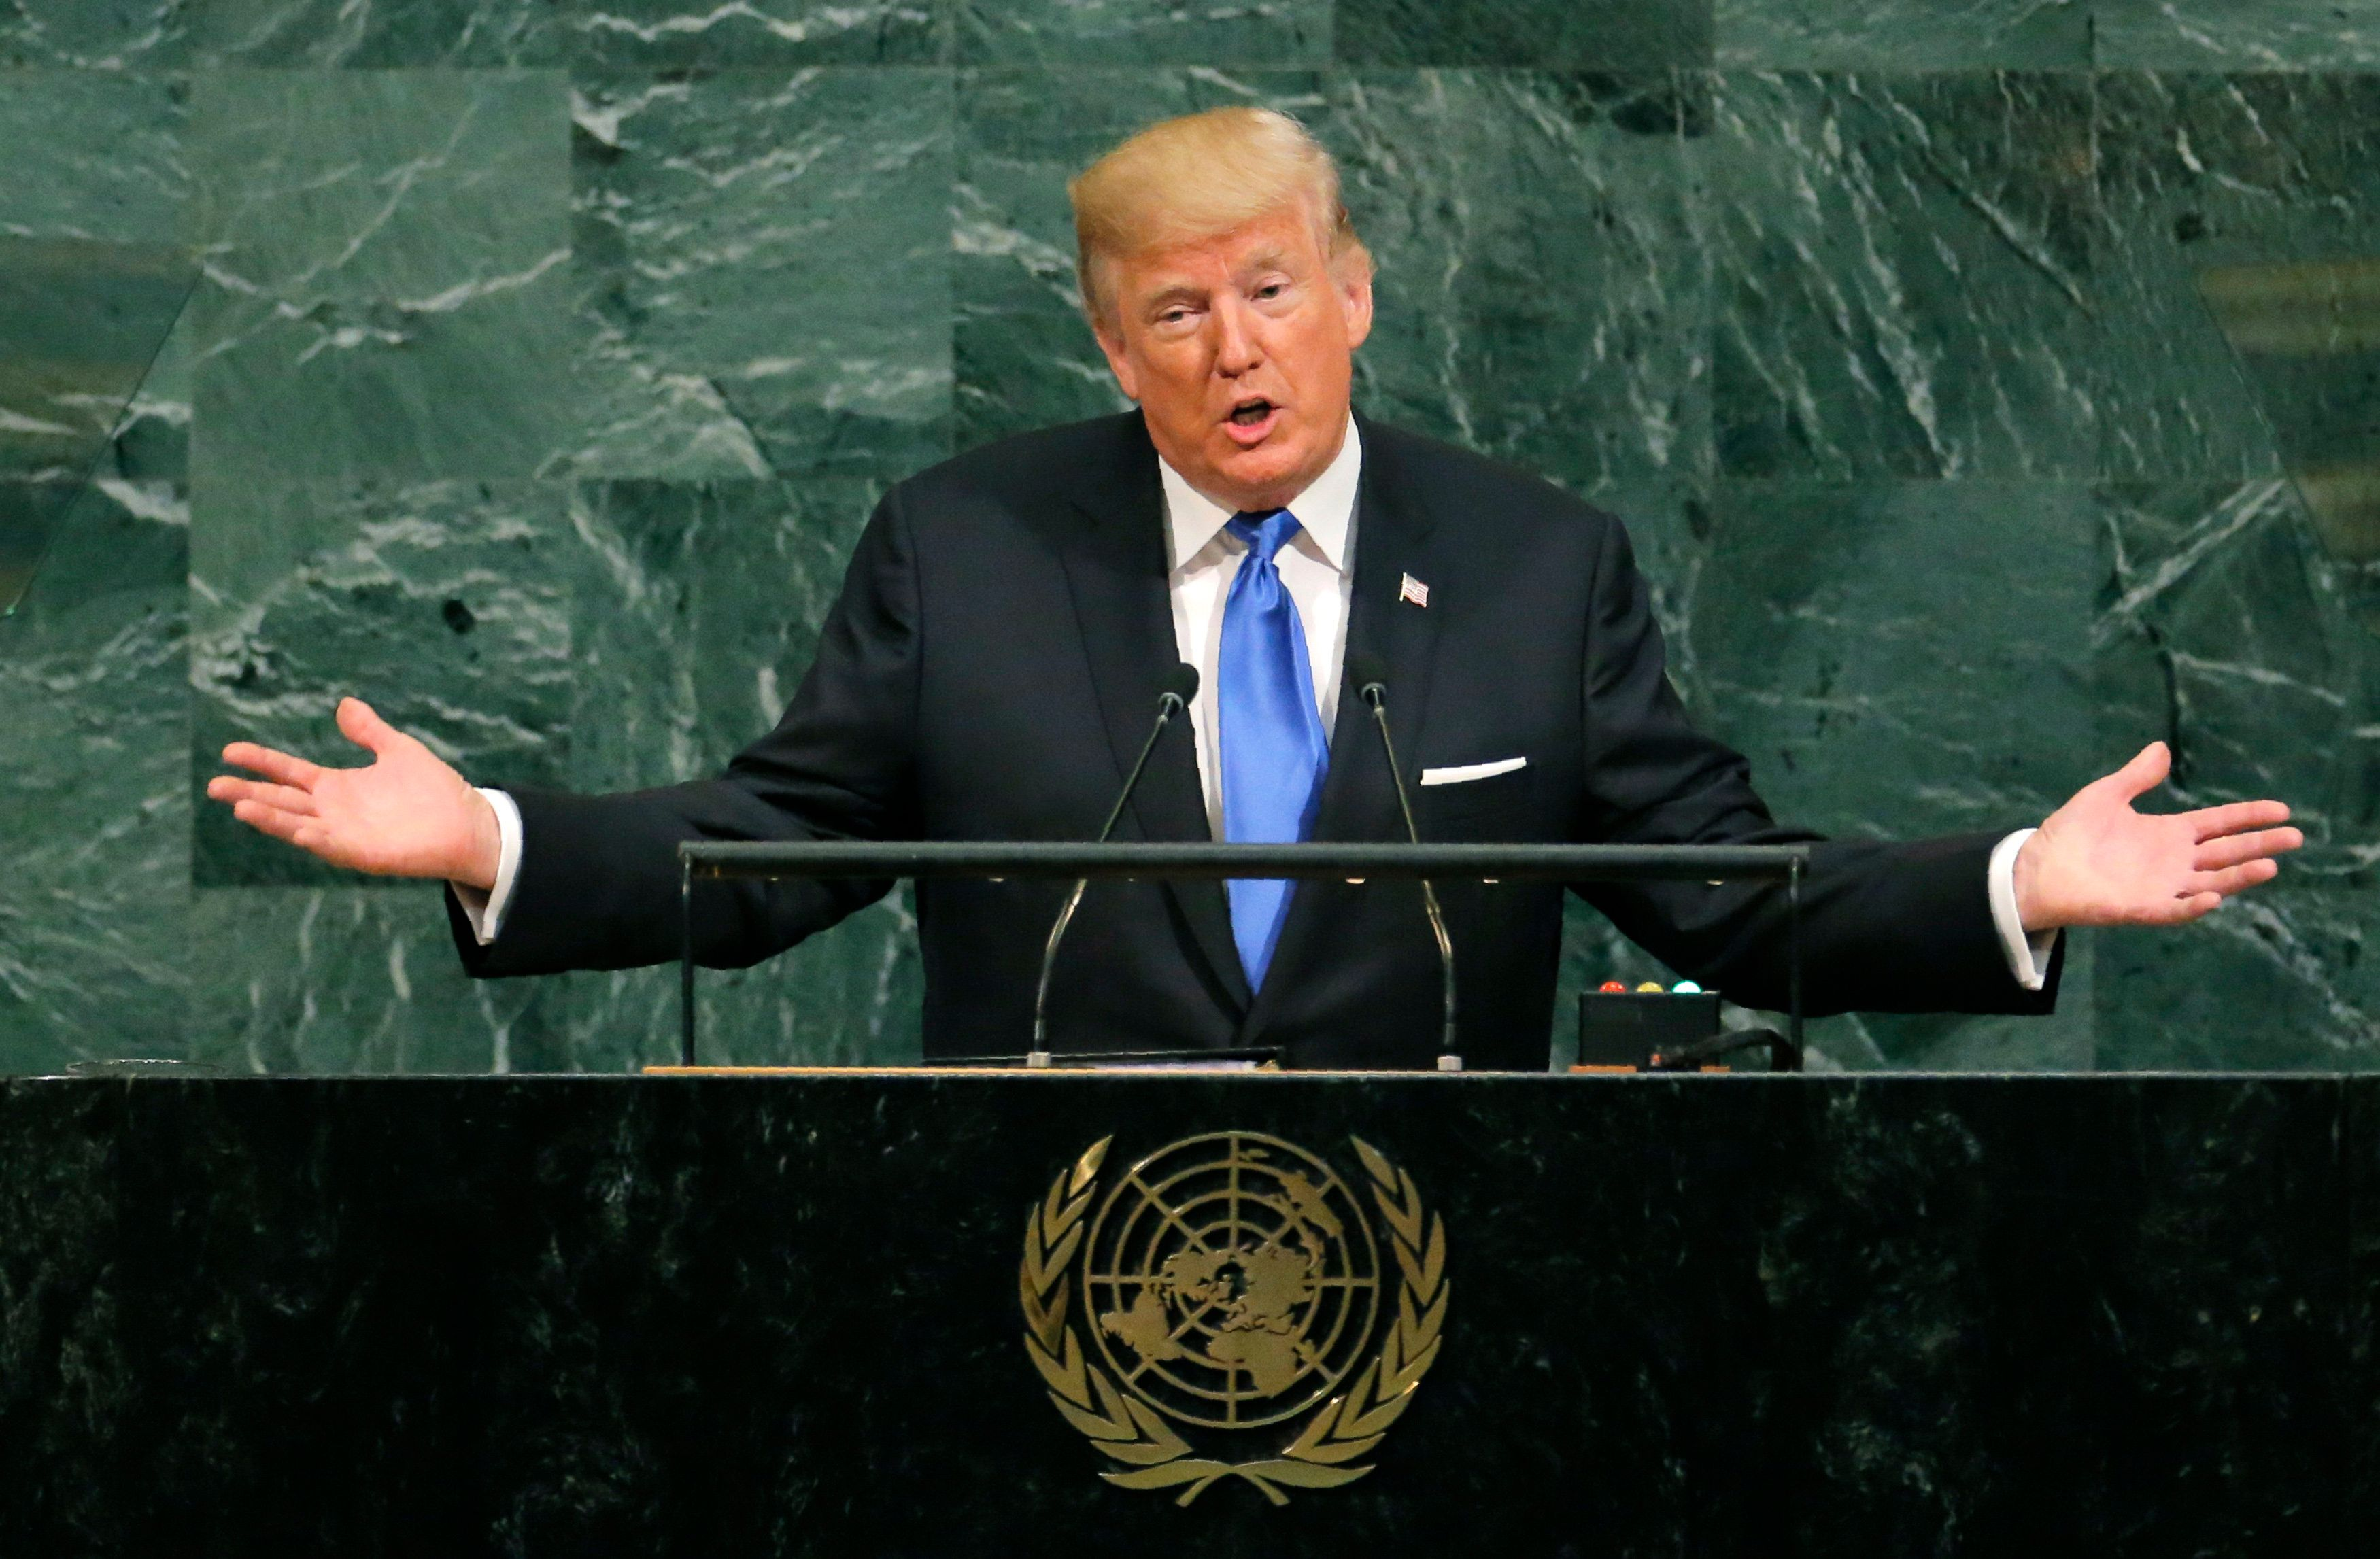 Donald Trump Threatens To 'Totally Destroy North Korea' During Speech To UN